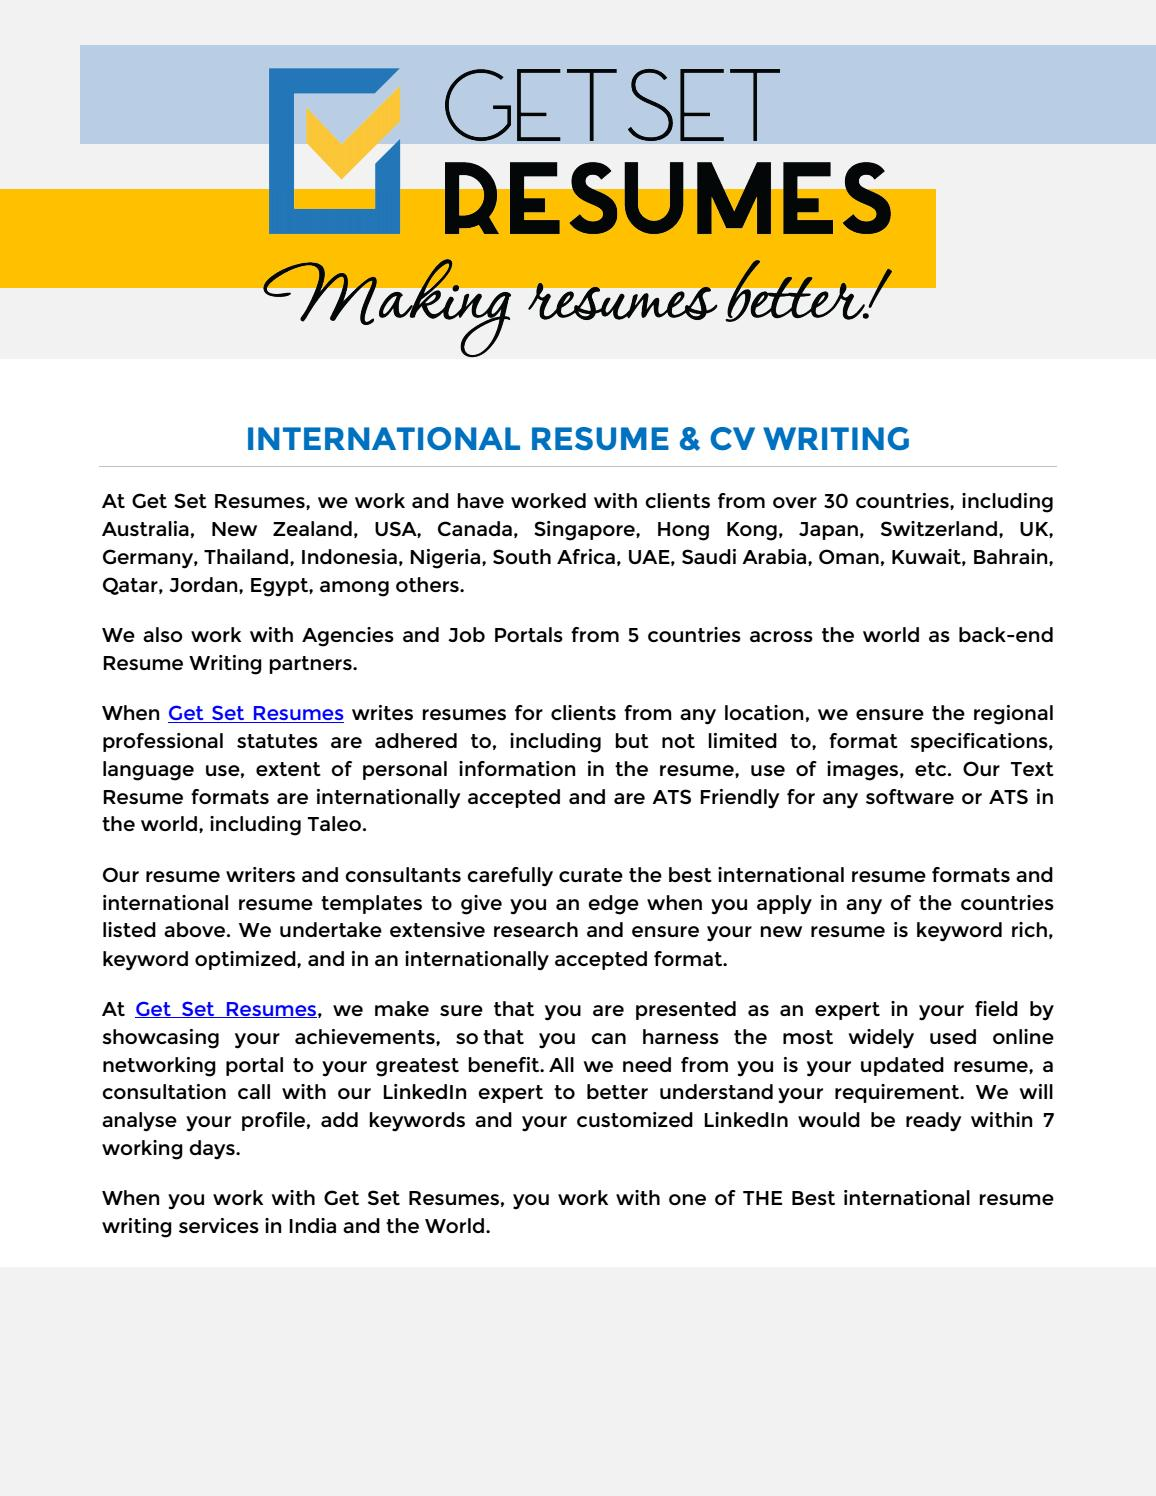 cv writing service one on resume government administrative assistant finance summary find Resume One On One Resume Writing Service